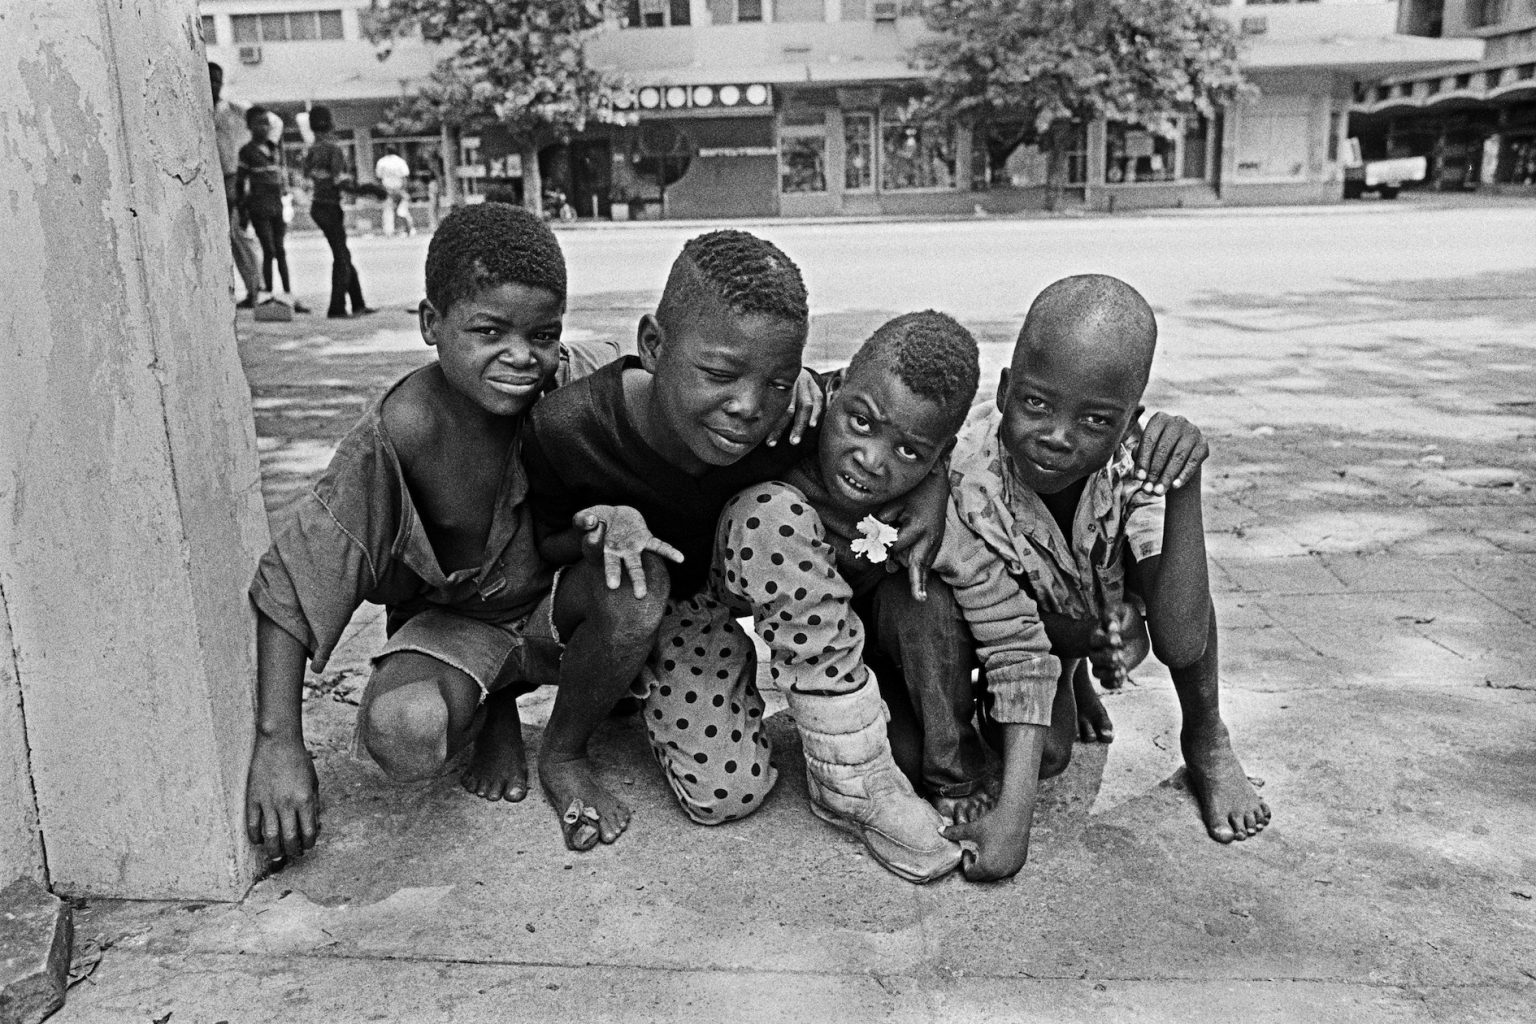 Cedric Nunn, Street Children in war-torn Mozambique, Maputo, 1990, courtesy of Bailey Seippel Gallery, ©C. Nunn